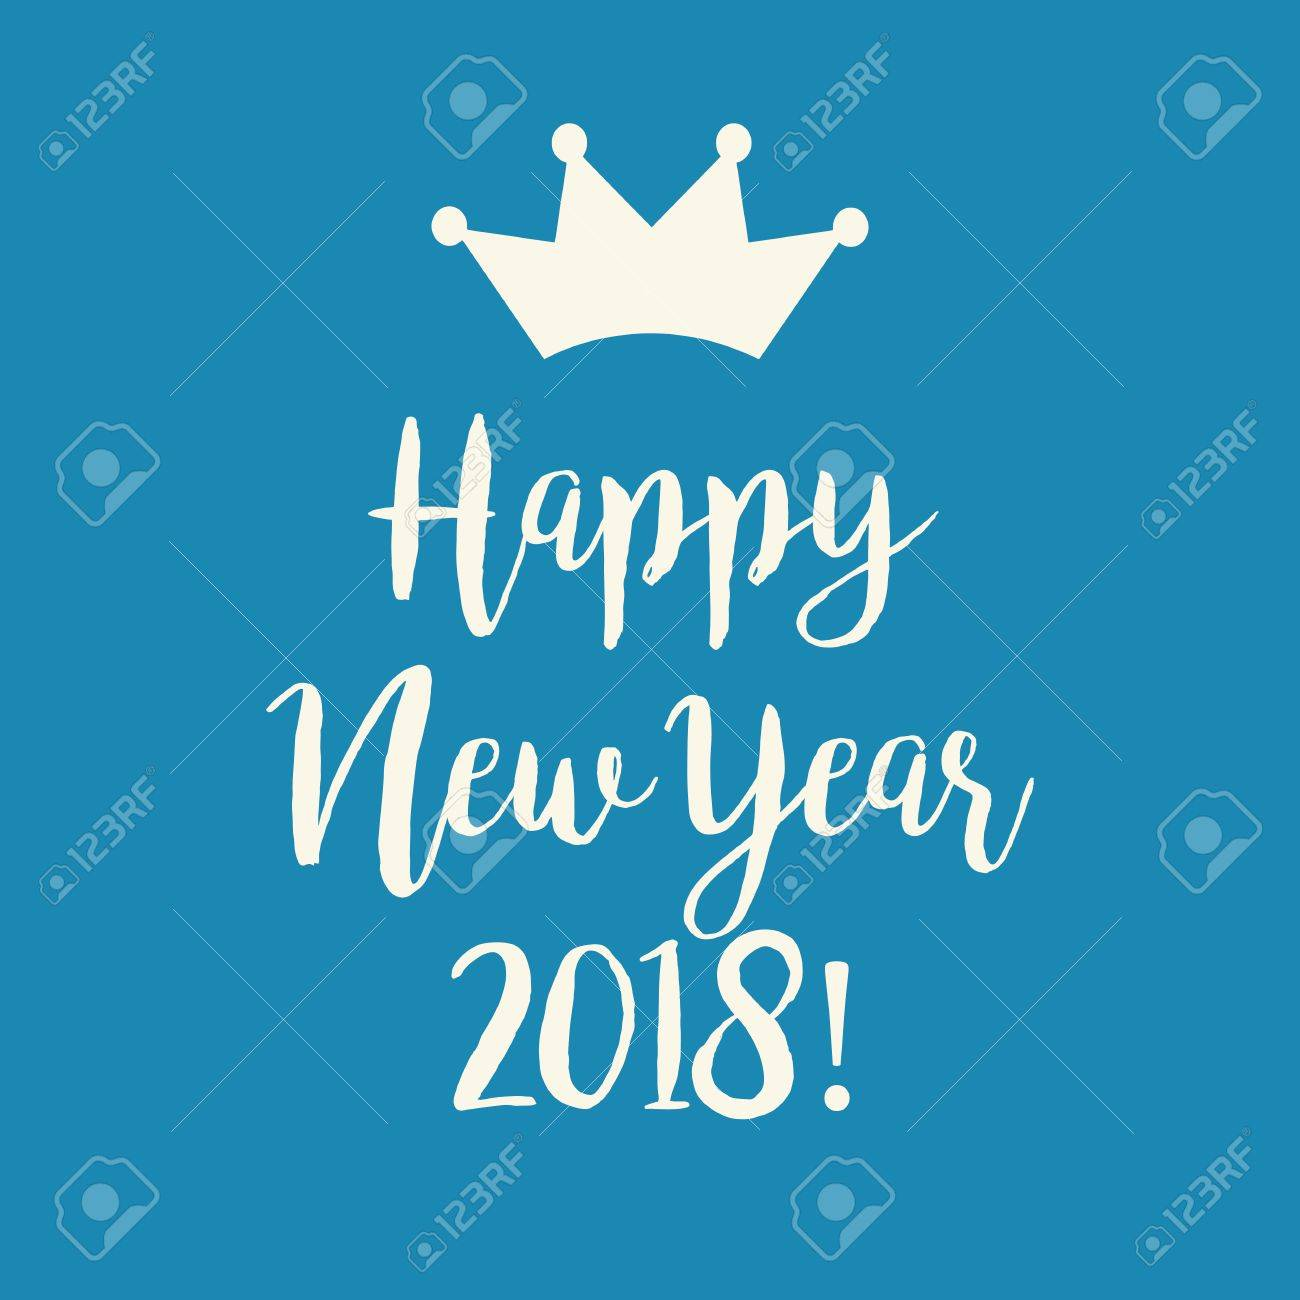 cute simple blue happy new year 2018 greeting card with a crown stock vector